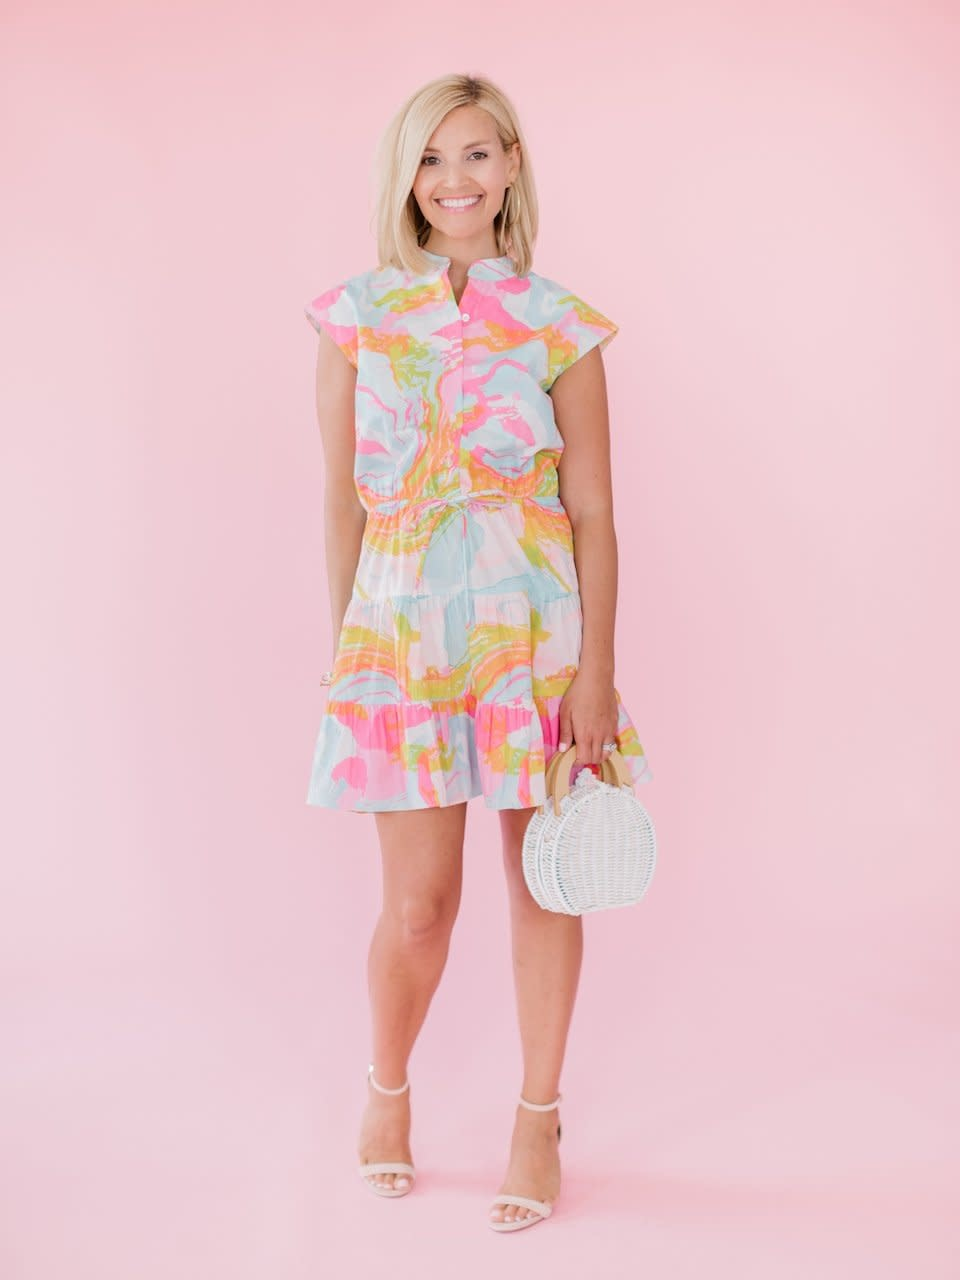 La Roque Chelsea Whimsical Watercolor Dress